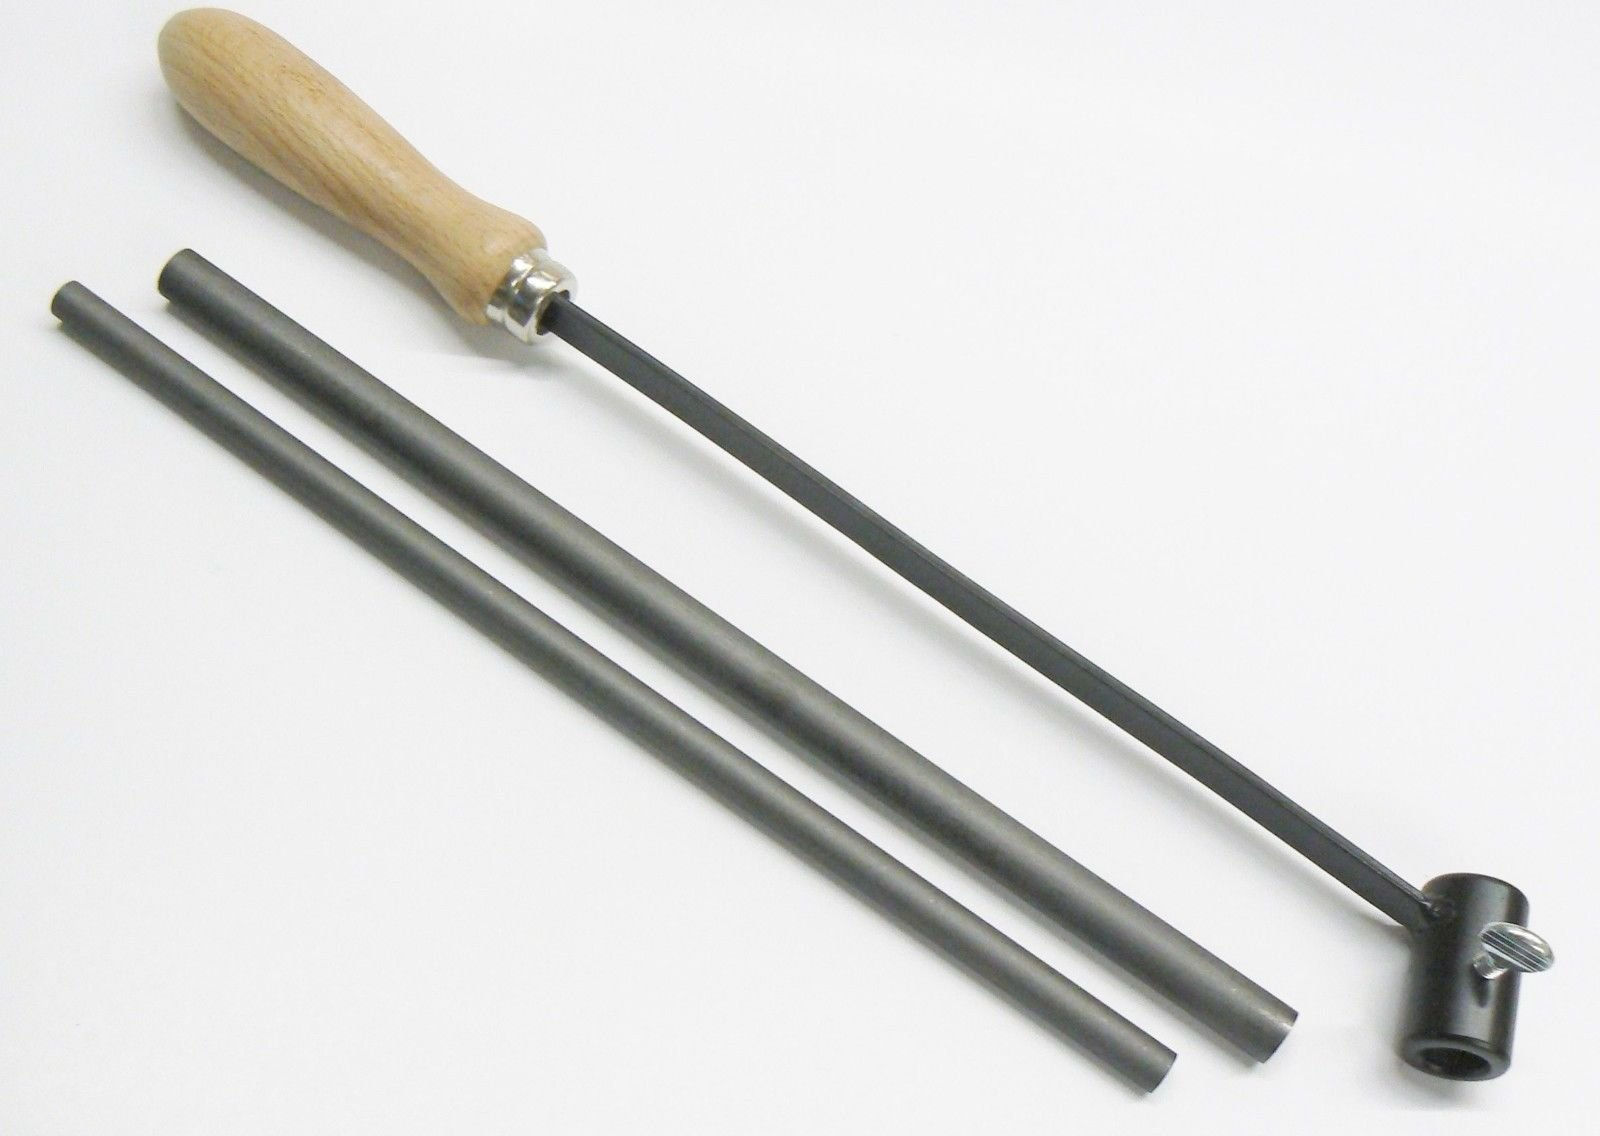 Graphite Stirring RODS with Holder Mix MELT & STIR Molten Metal 2 RODS & Handle (LZ 1 PM 18x3x3) by NOVEL